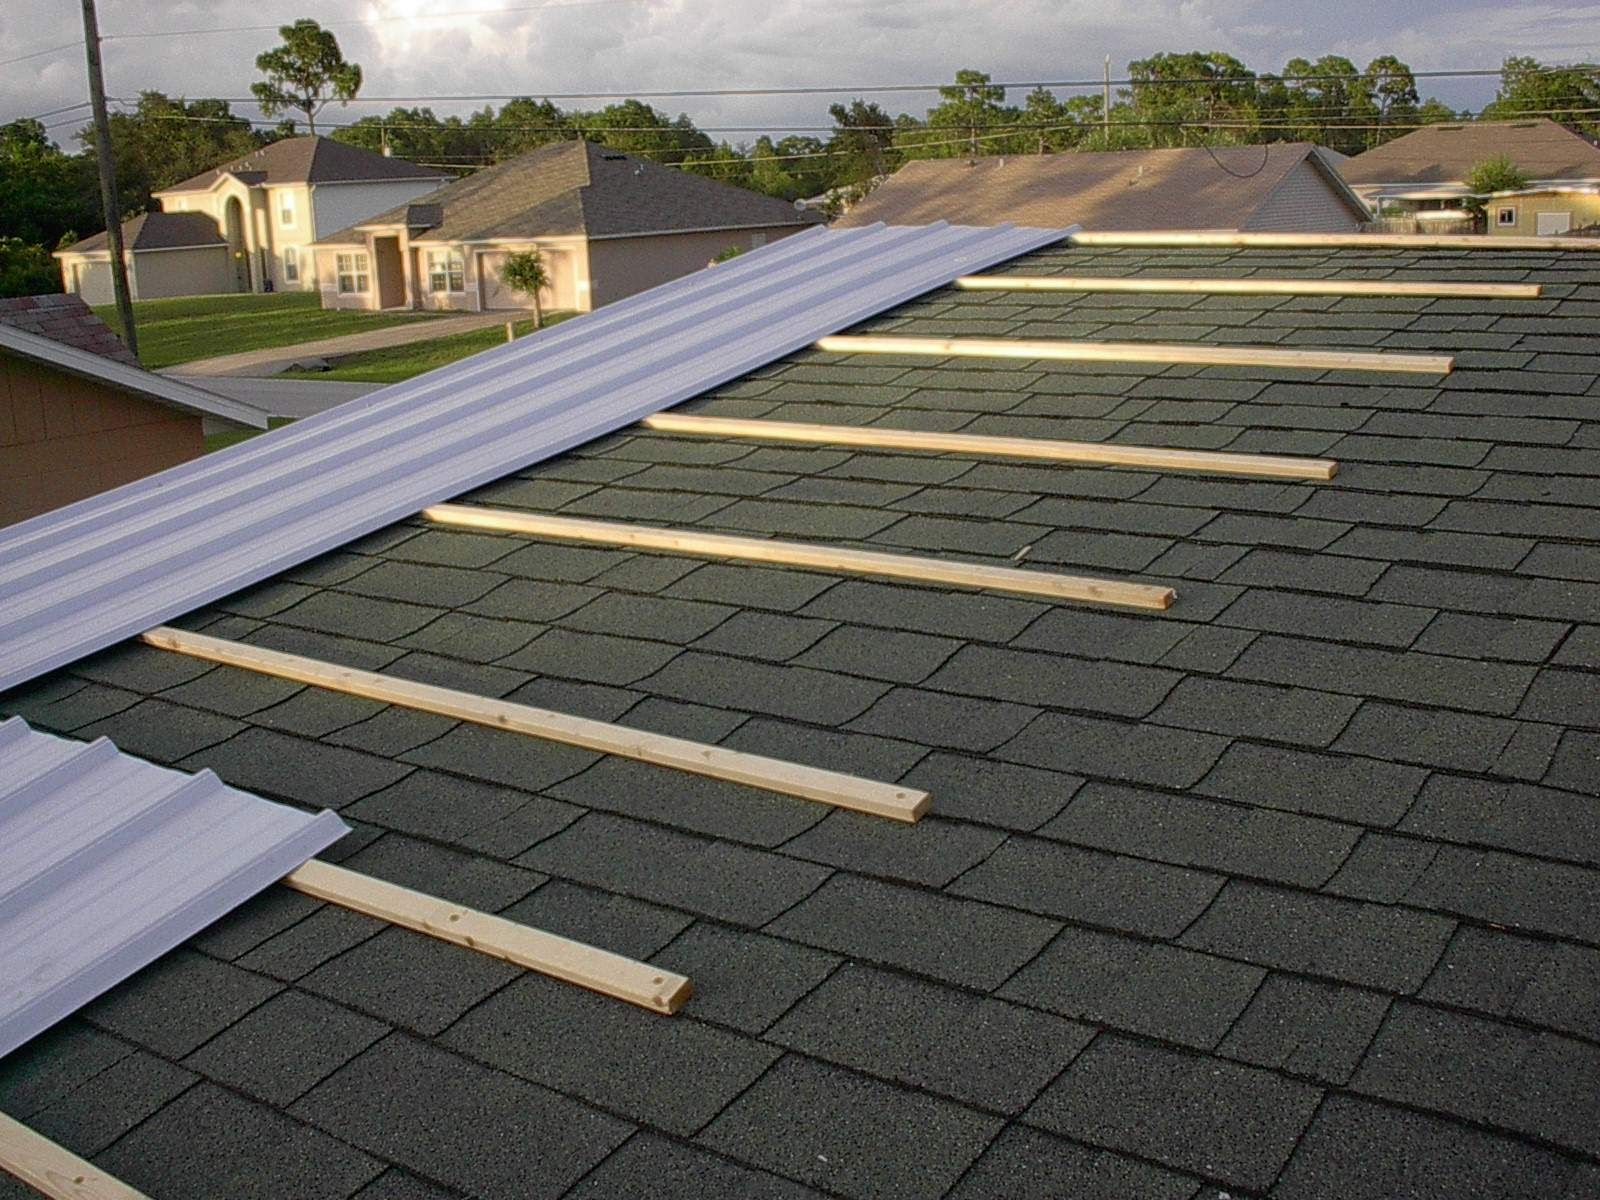 Metal Roof Purlins Over Shingles